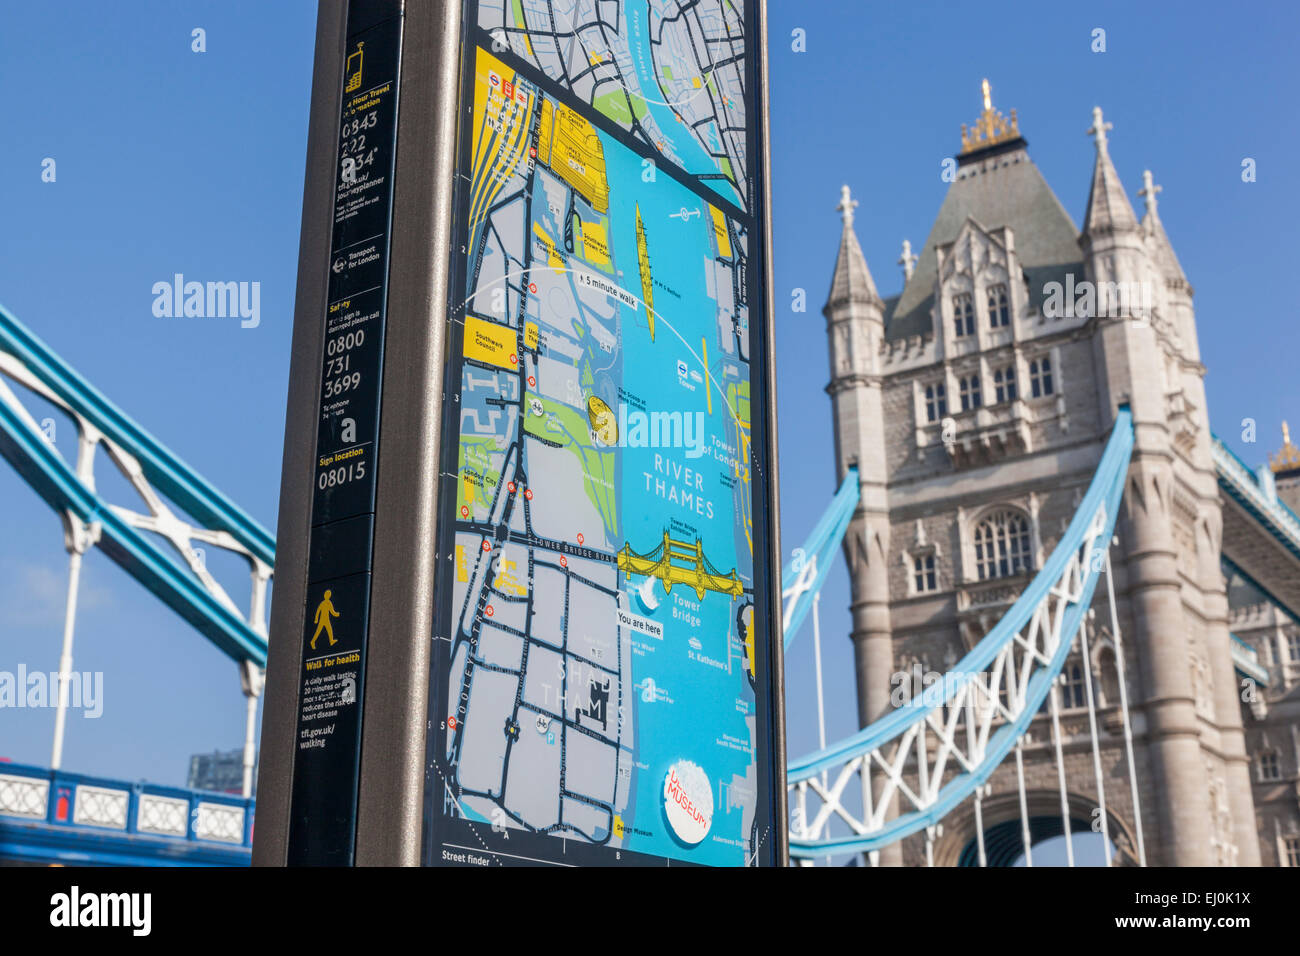 Street Map London Stock Photos & Street Map London Stock Images - Alamy